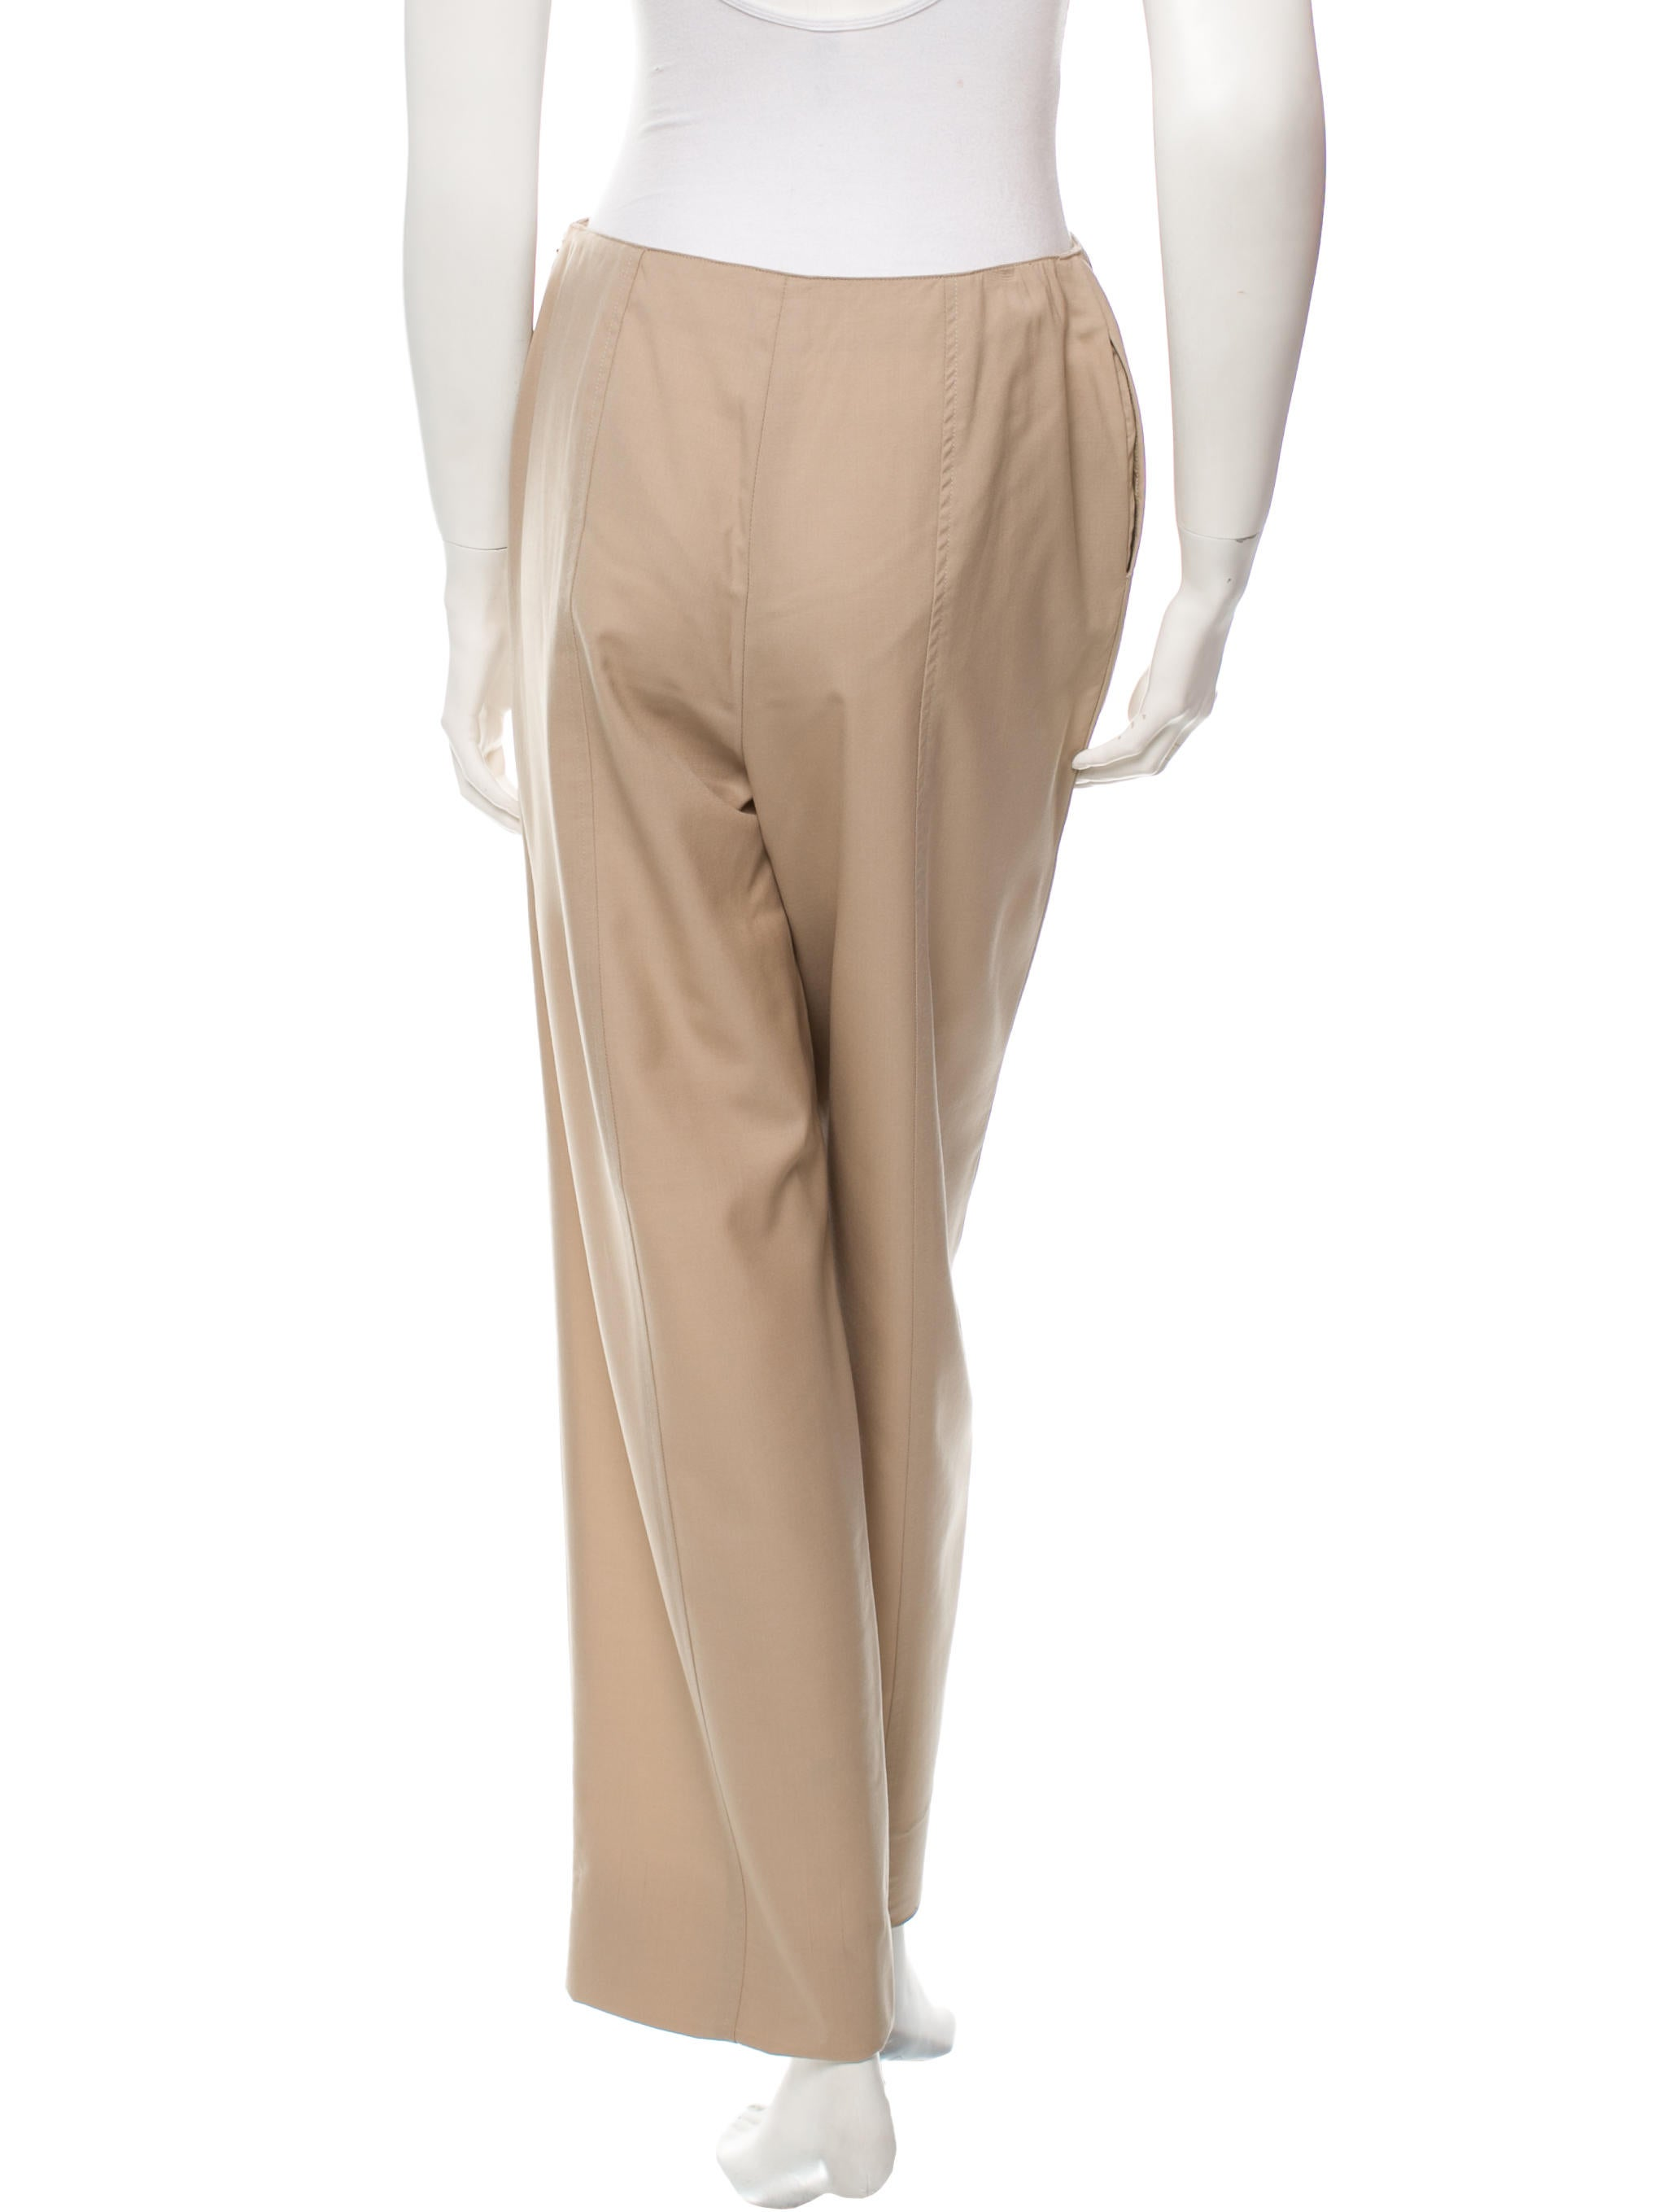 Description. Our super stylish Made In Italy Matilde Khaki Green Wide Leg Linen Trousers not only look good but they are so super comfortable! We love the style of these fabulous wide leg trousers and they have an elasticated waist for a comfortable fit.